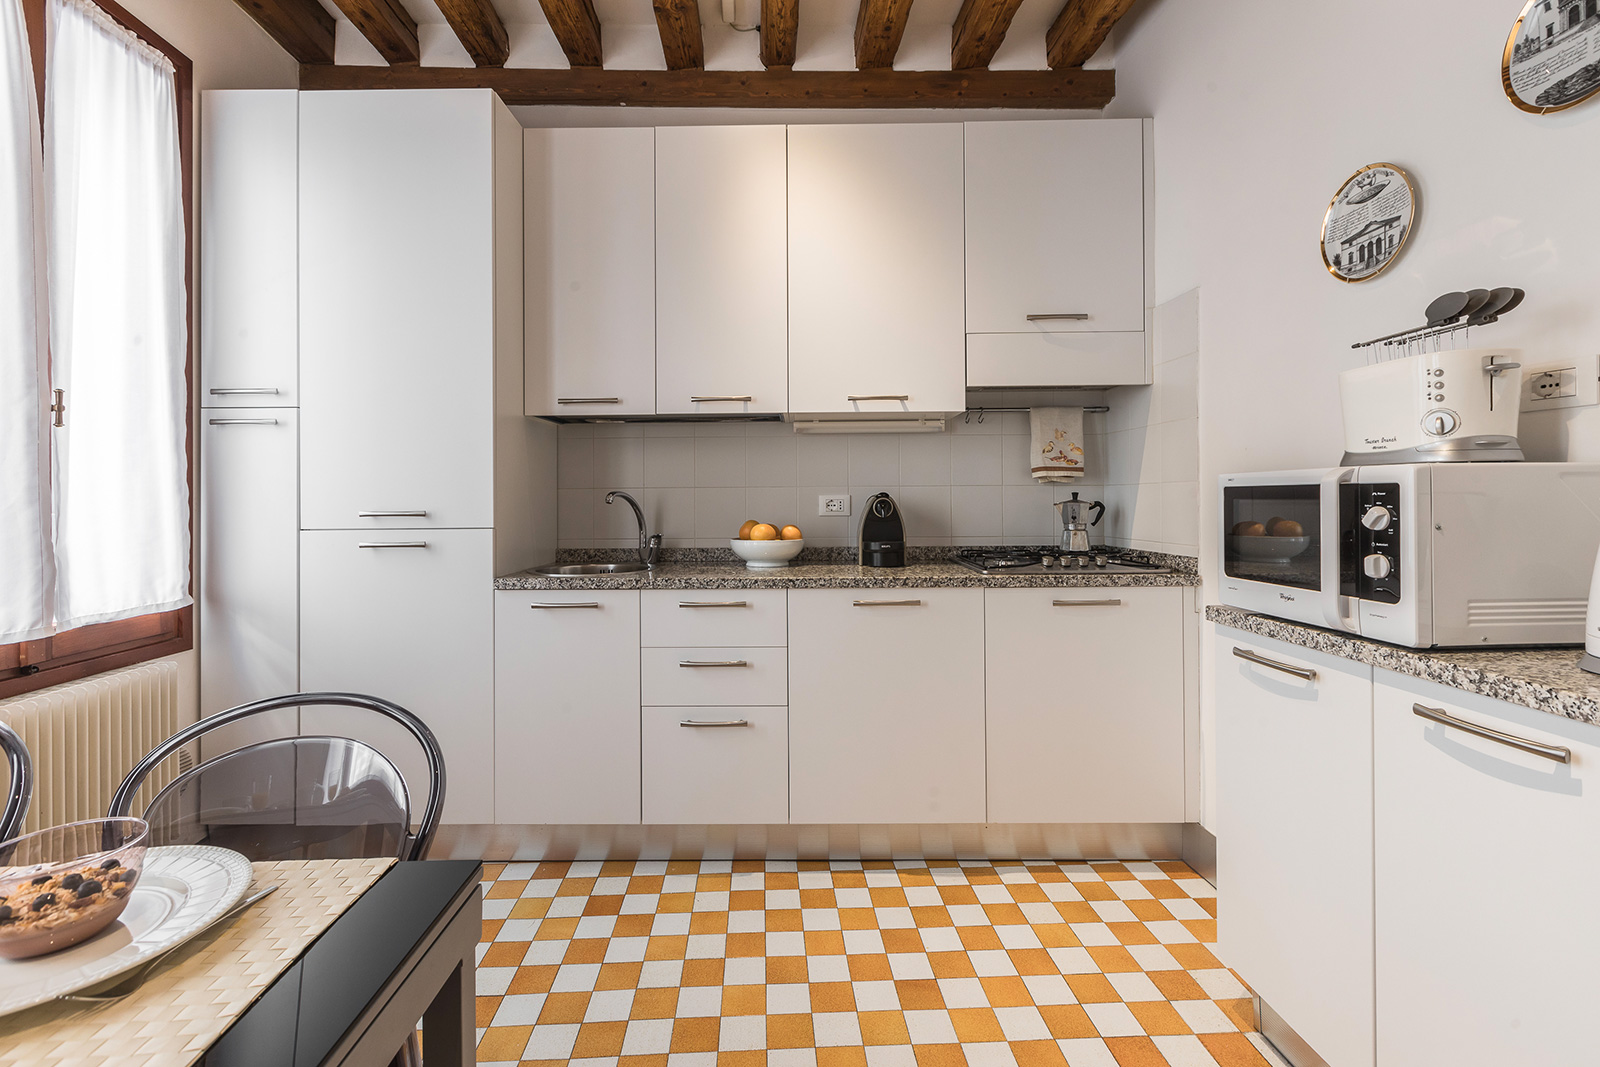 the kitchen is very bright and fully equipped and spacious